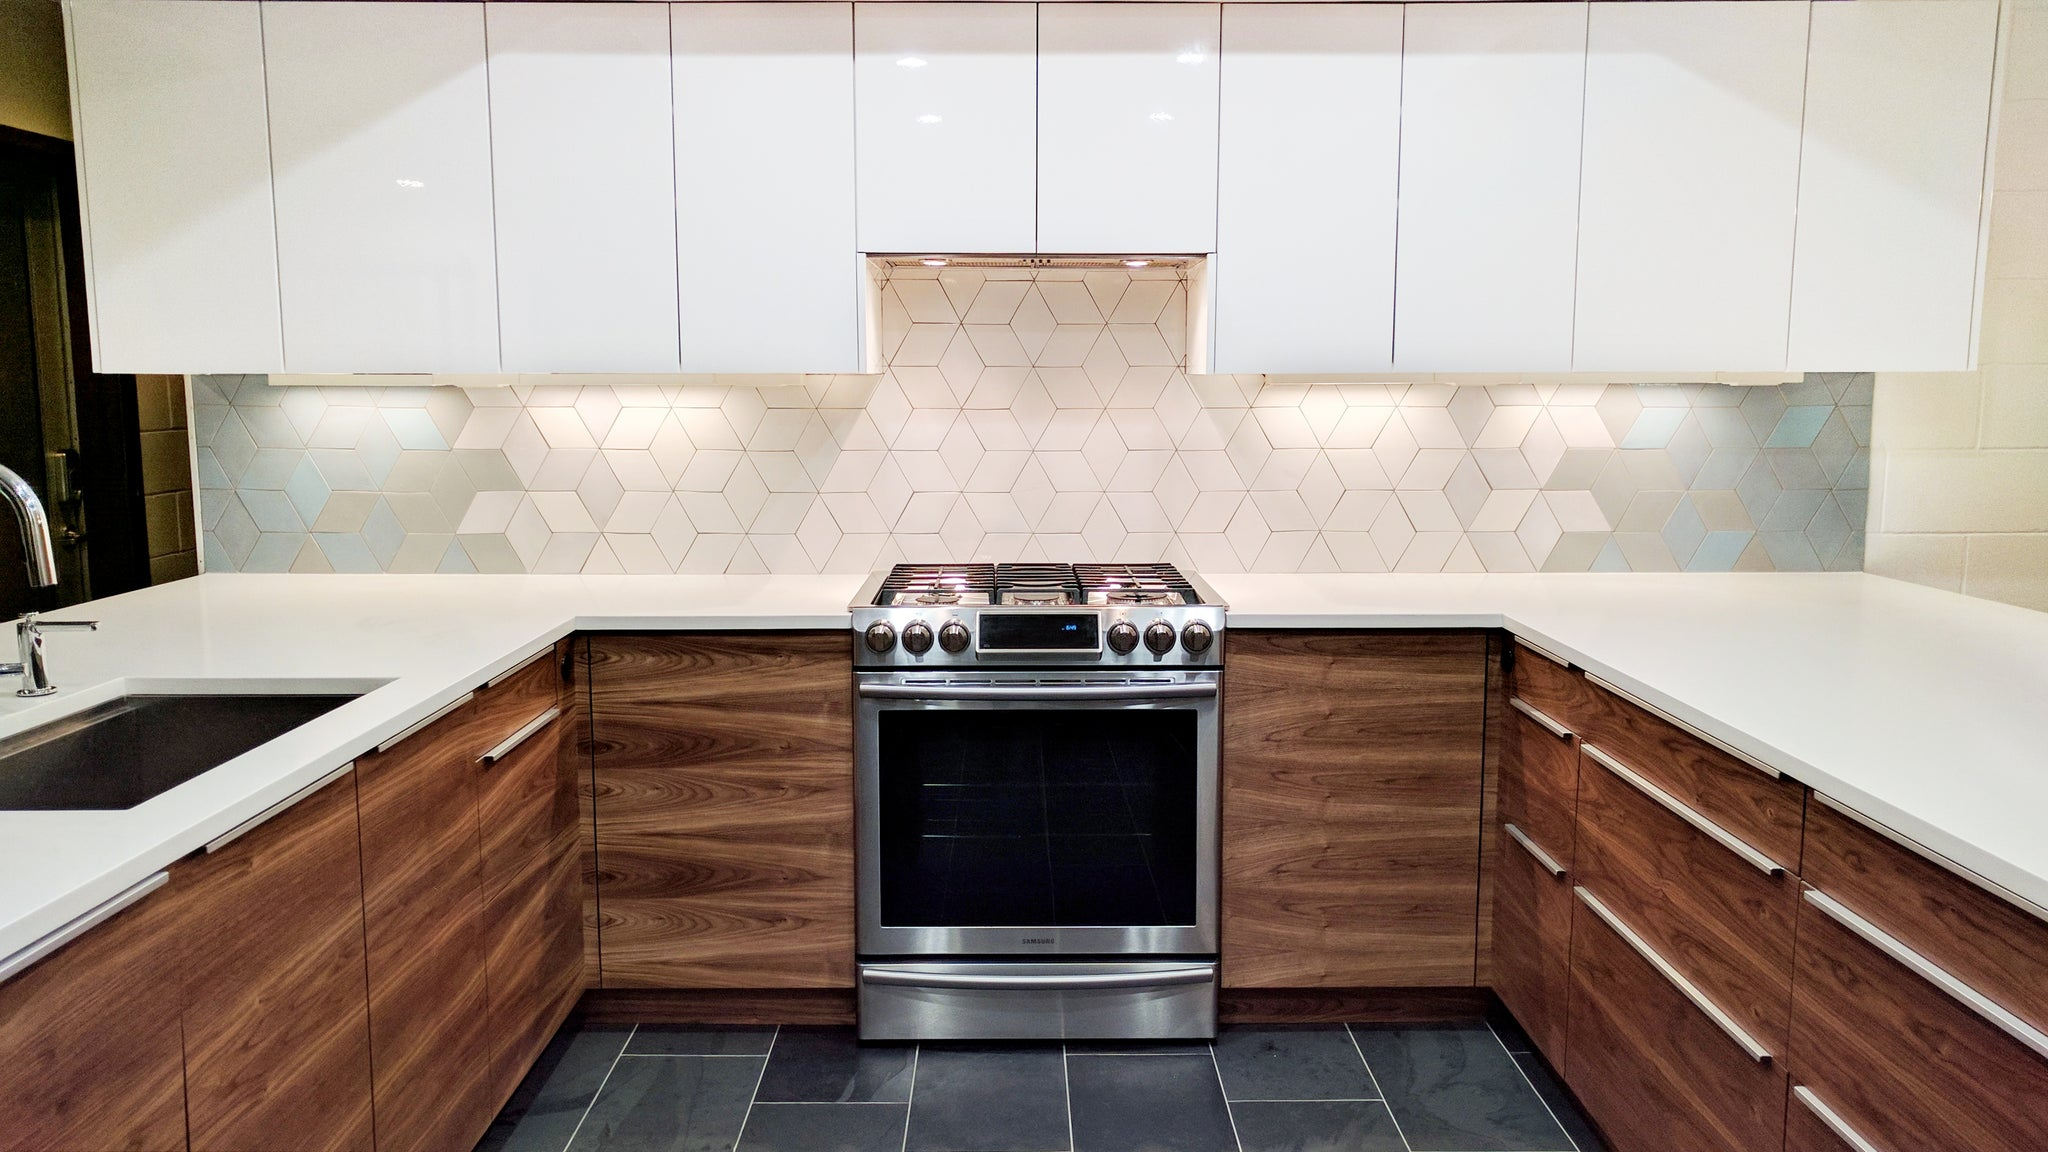 Geometric Diamond Tile Kitchen Backsplash